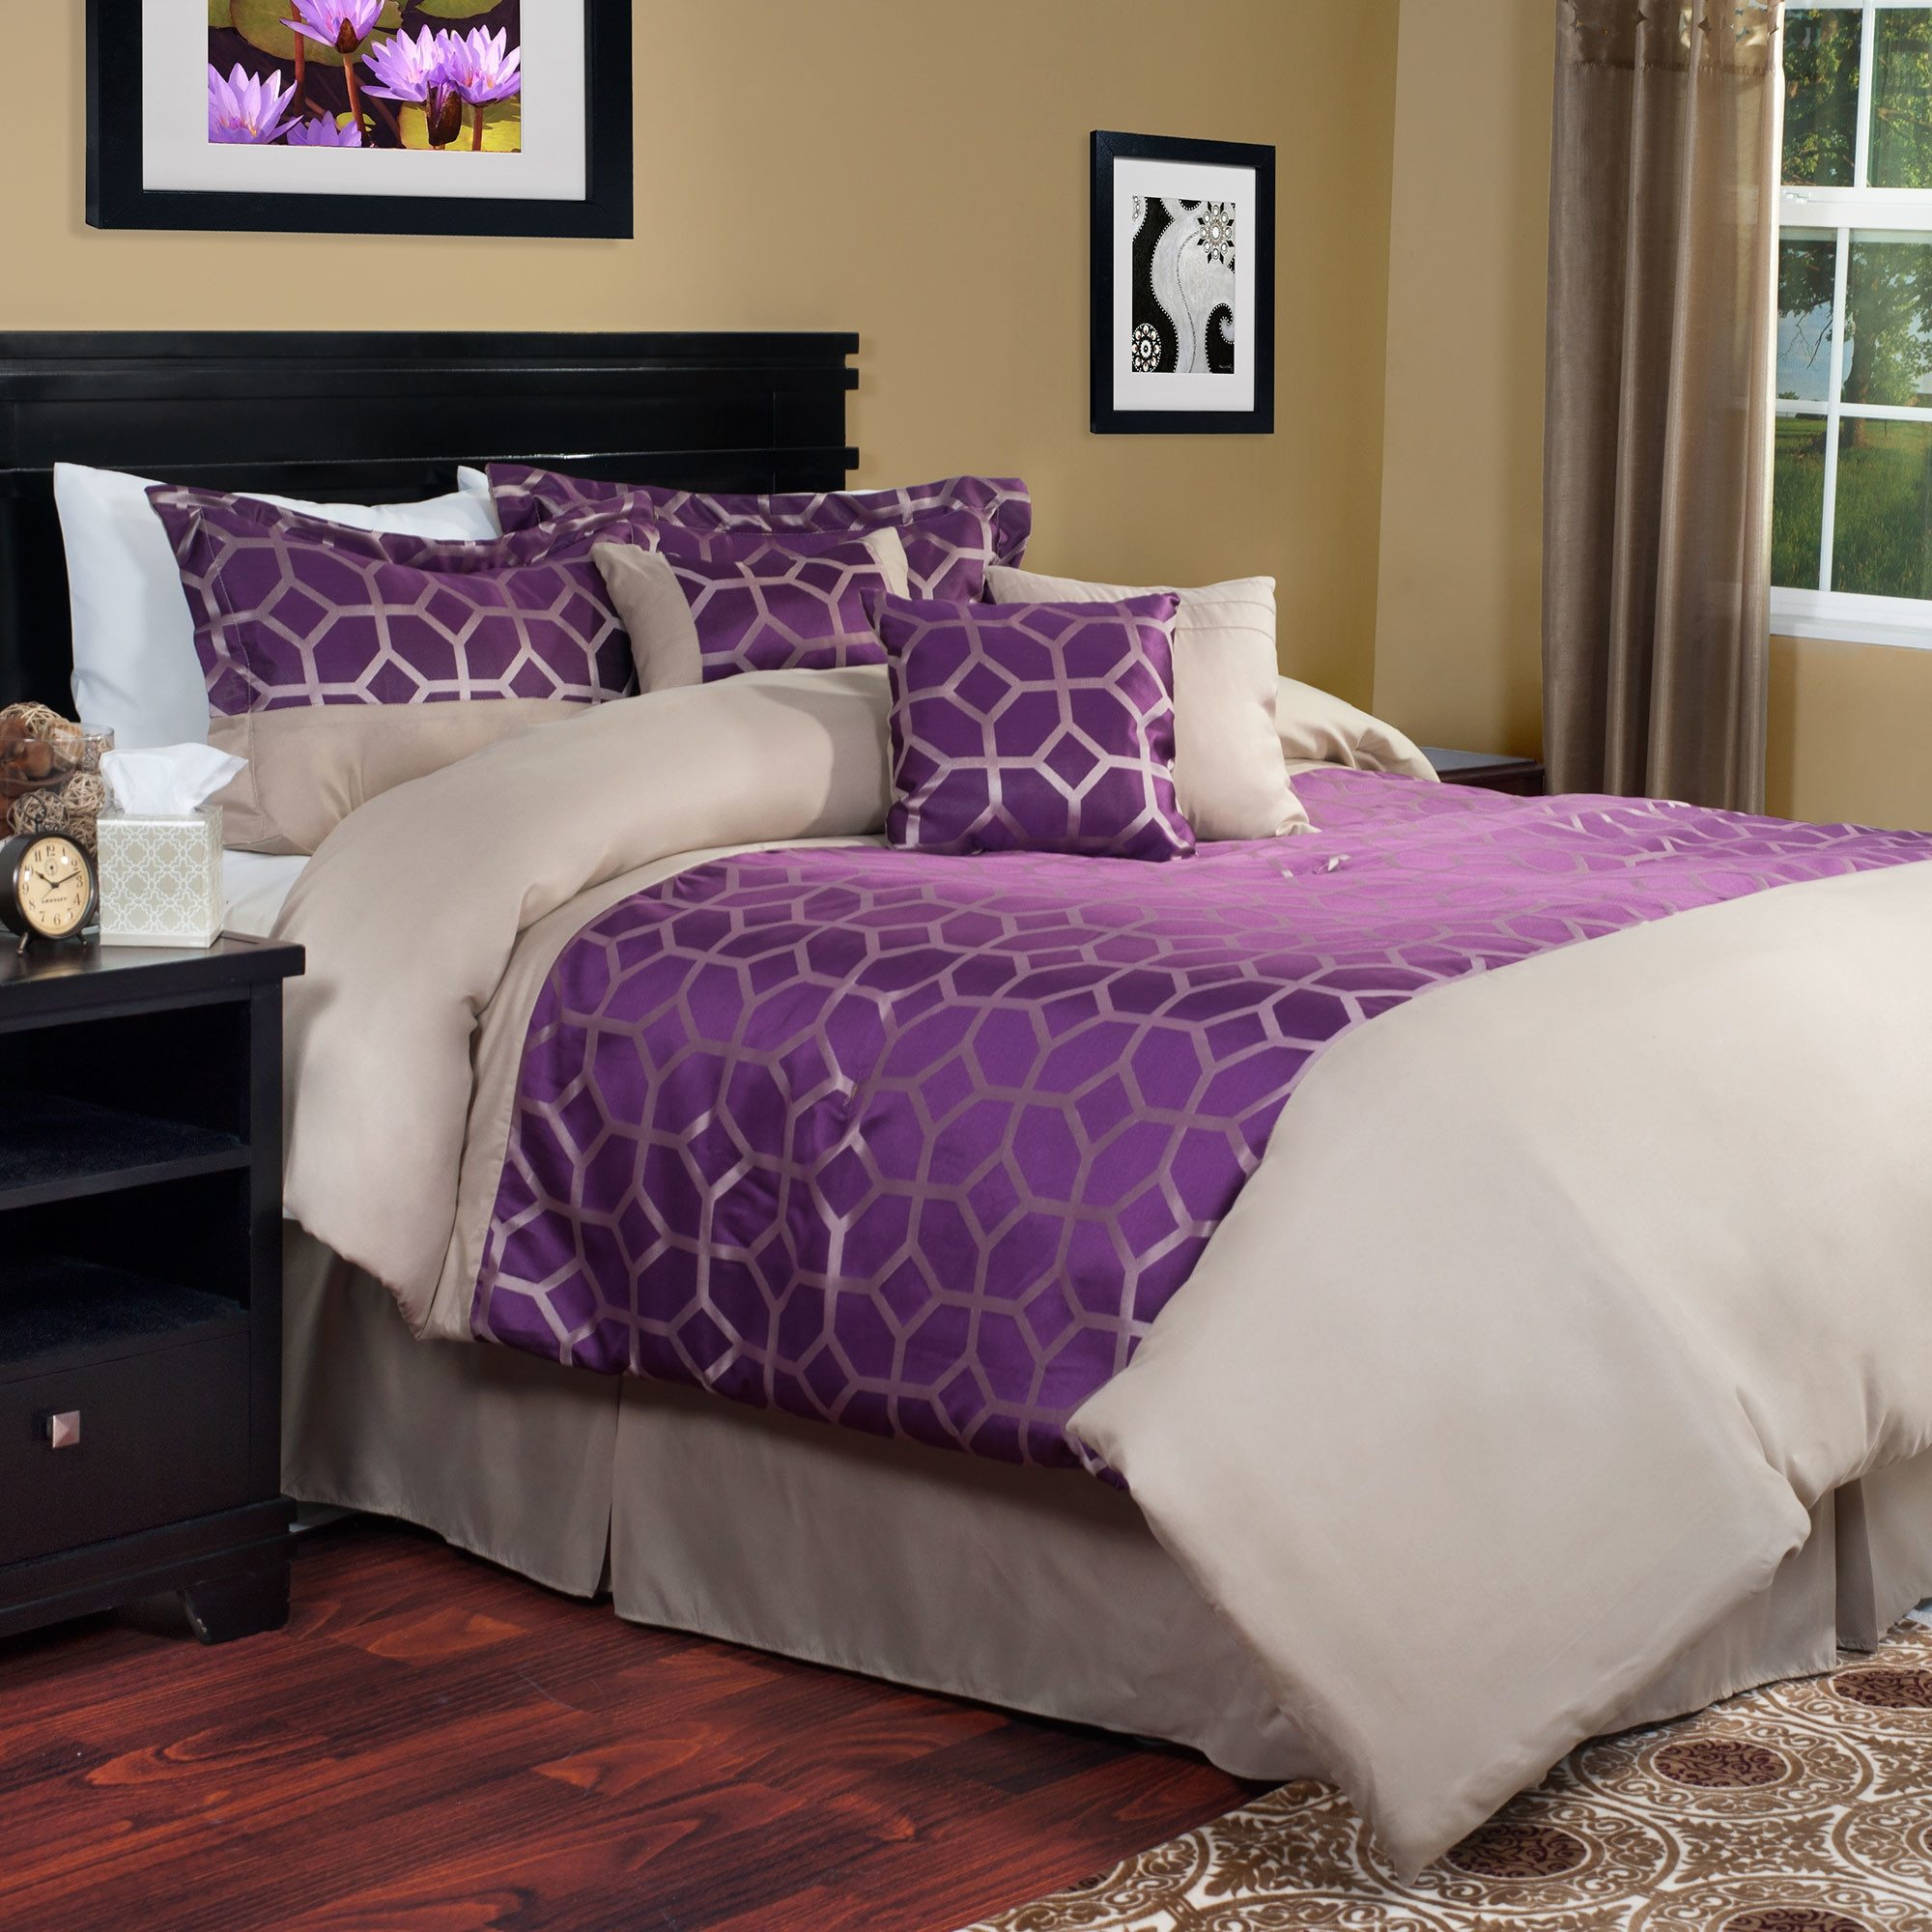 Purple Queen Comforter Sets | Purple Comforter Sets | Purple Velvet Comforter Sets Queen